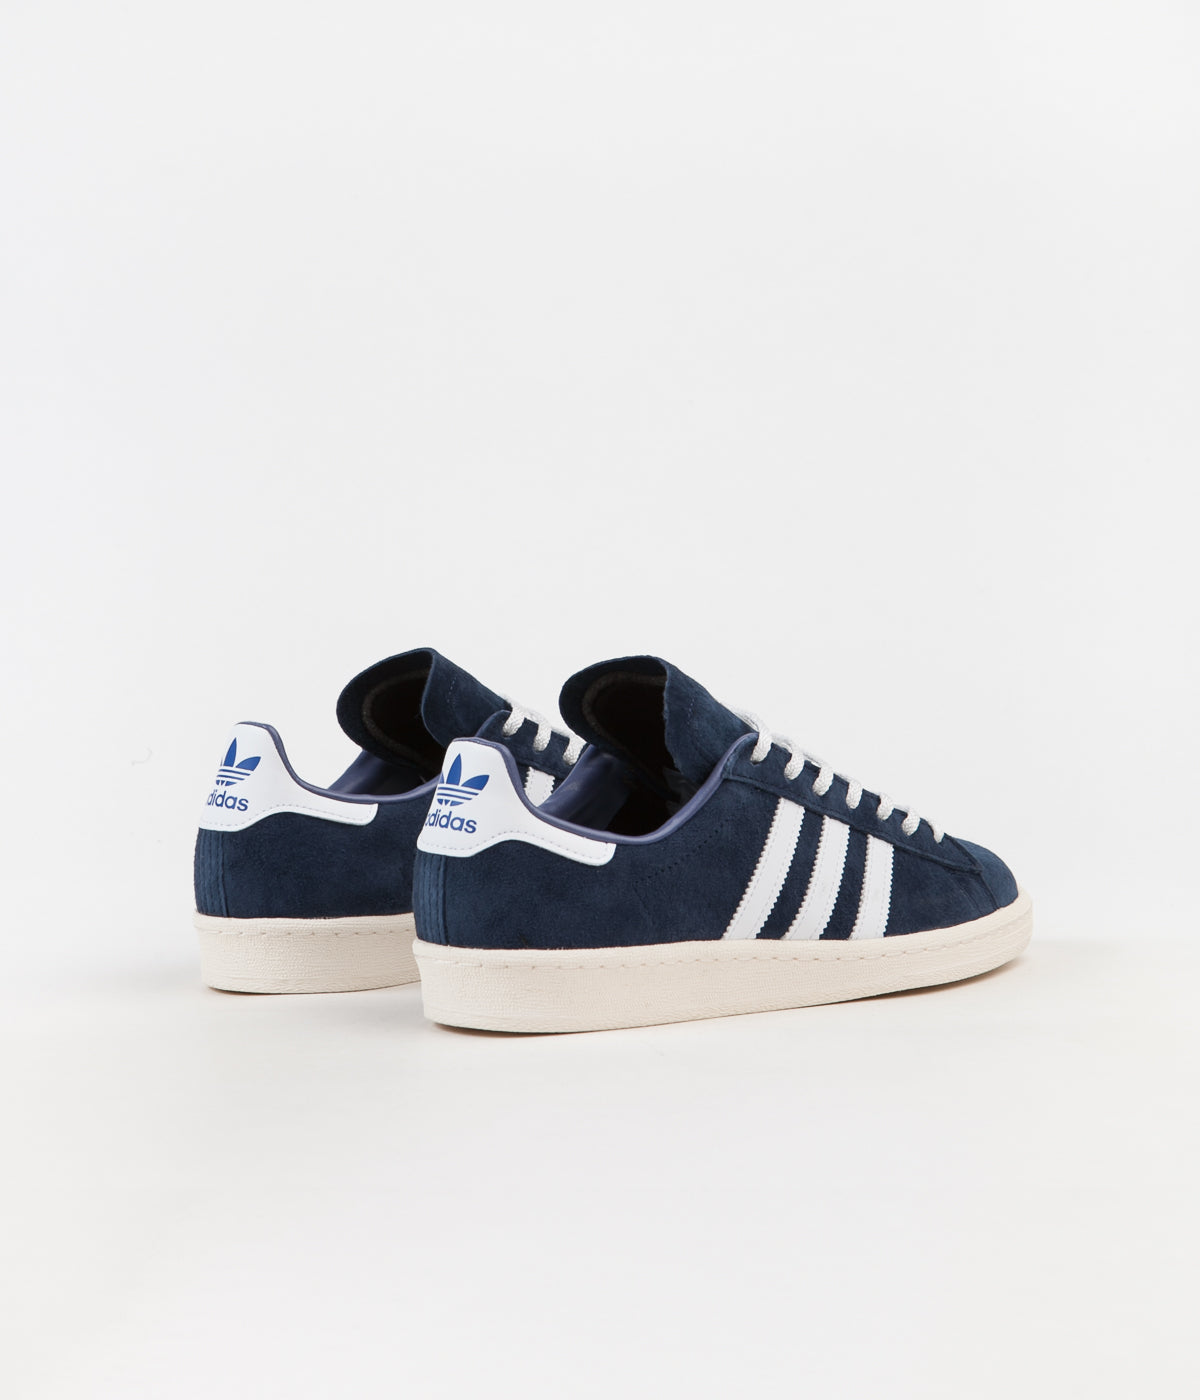 Adidas x Brian Lotti Campus 80's 'Respect Your Roots' Shoes